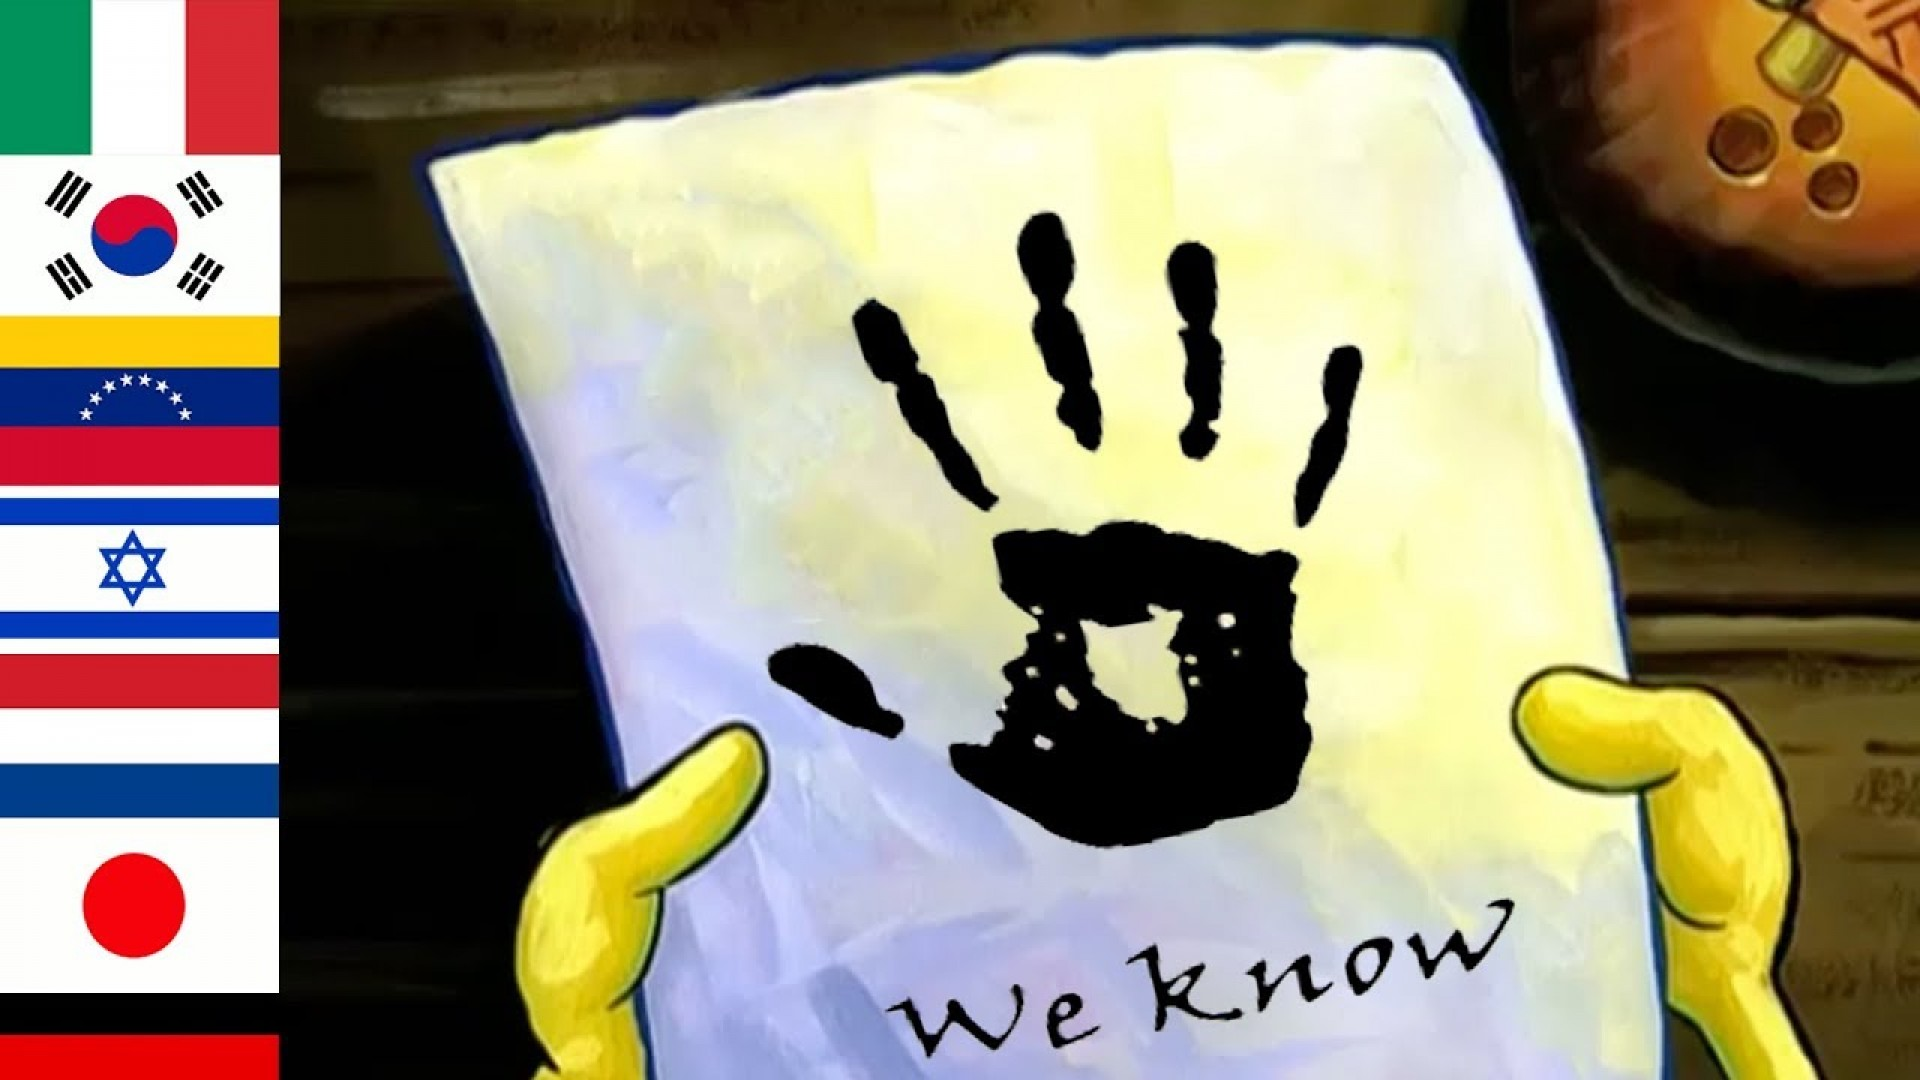 005 Maxresdefault Spongebob Essay Surprising Font Meme House 1920